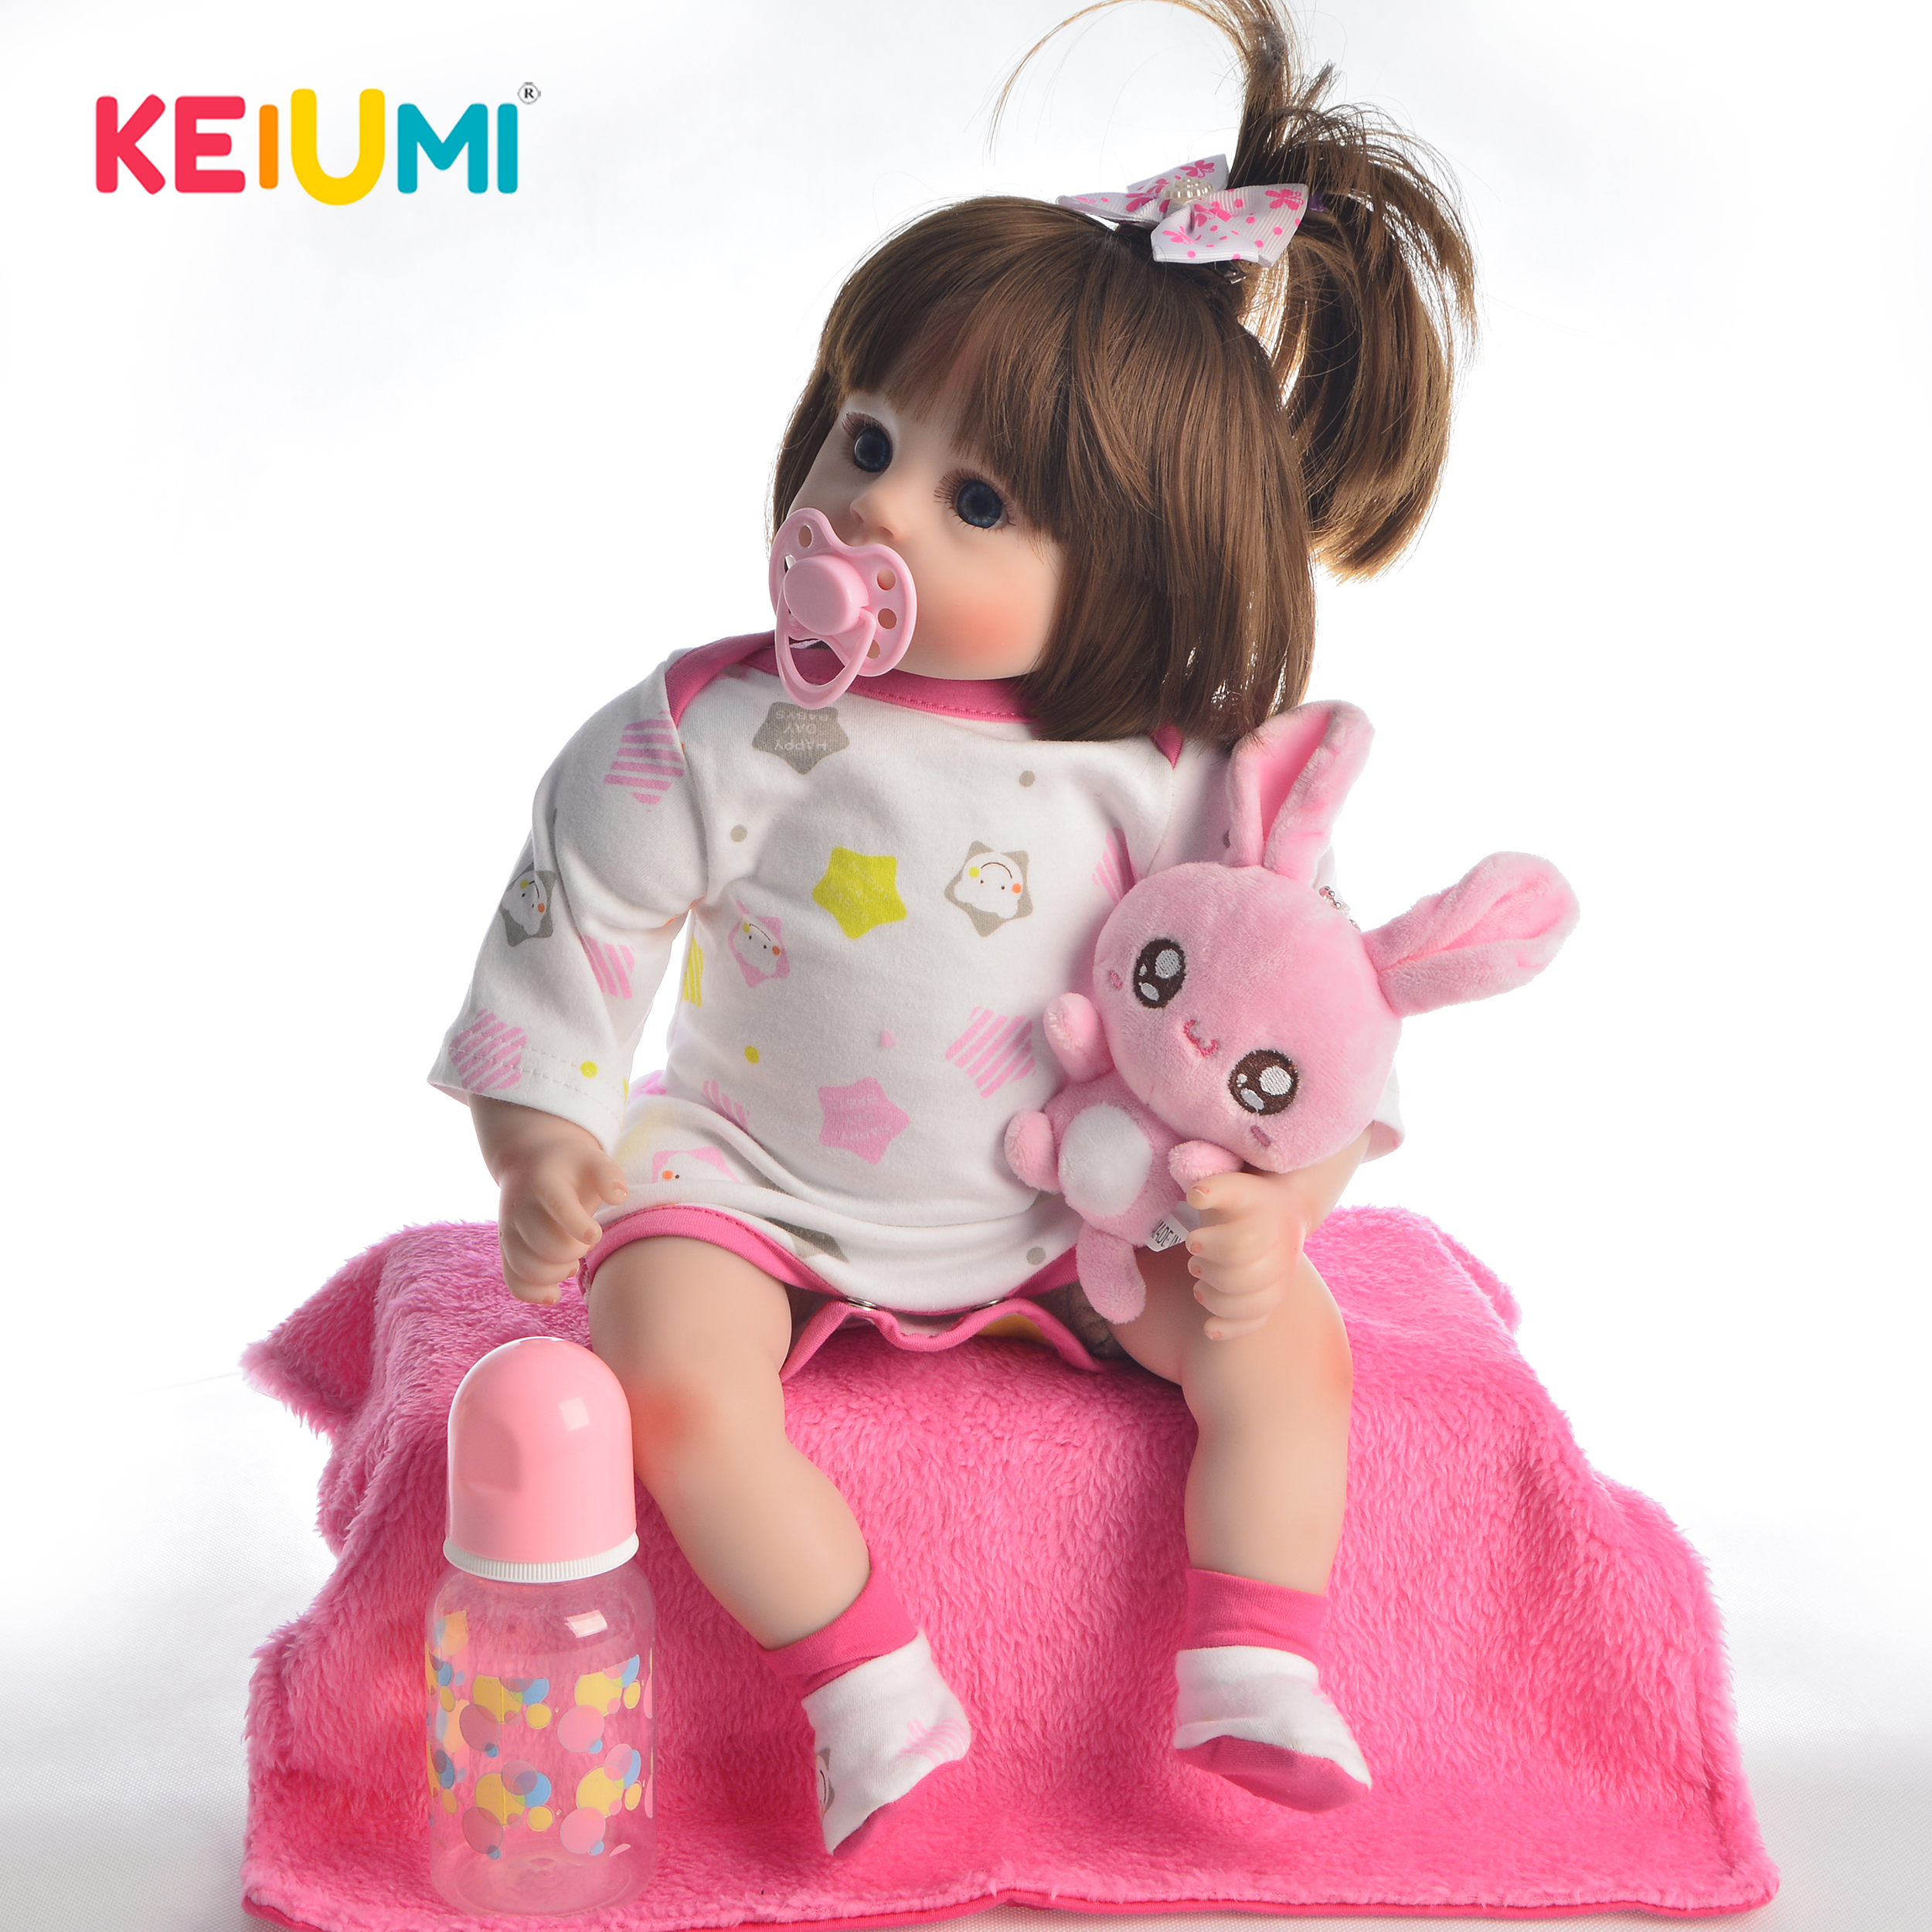 KEIUMI 18 Inch New Style Reborn Baby Lovely Girl Doll With Soft Silicone Vinyl 2019 Cute Baby Toy Doll For Childrens Day GiftsKEIUMI 18 Inch New Style Reborn Baby Lovely Girl Doll With Soft Silicone Vinyl 2019 Cute Baby Toy Doll For Childrens Day Gifts